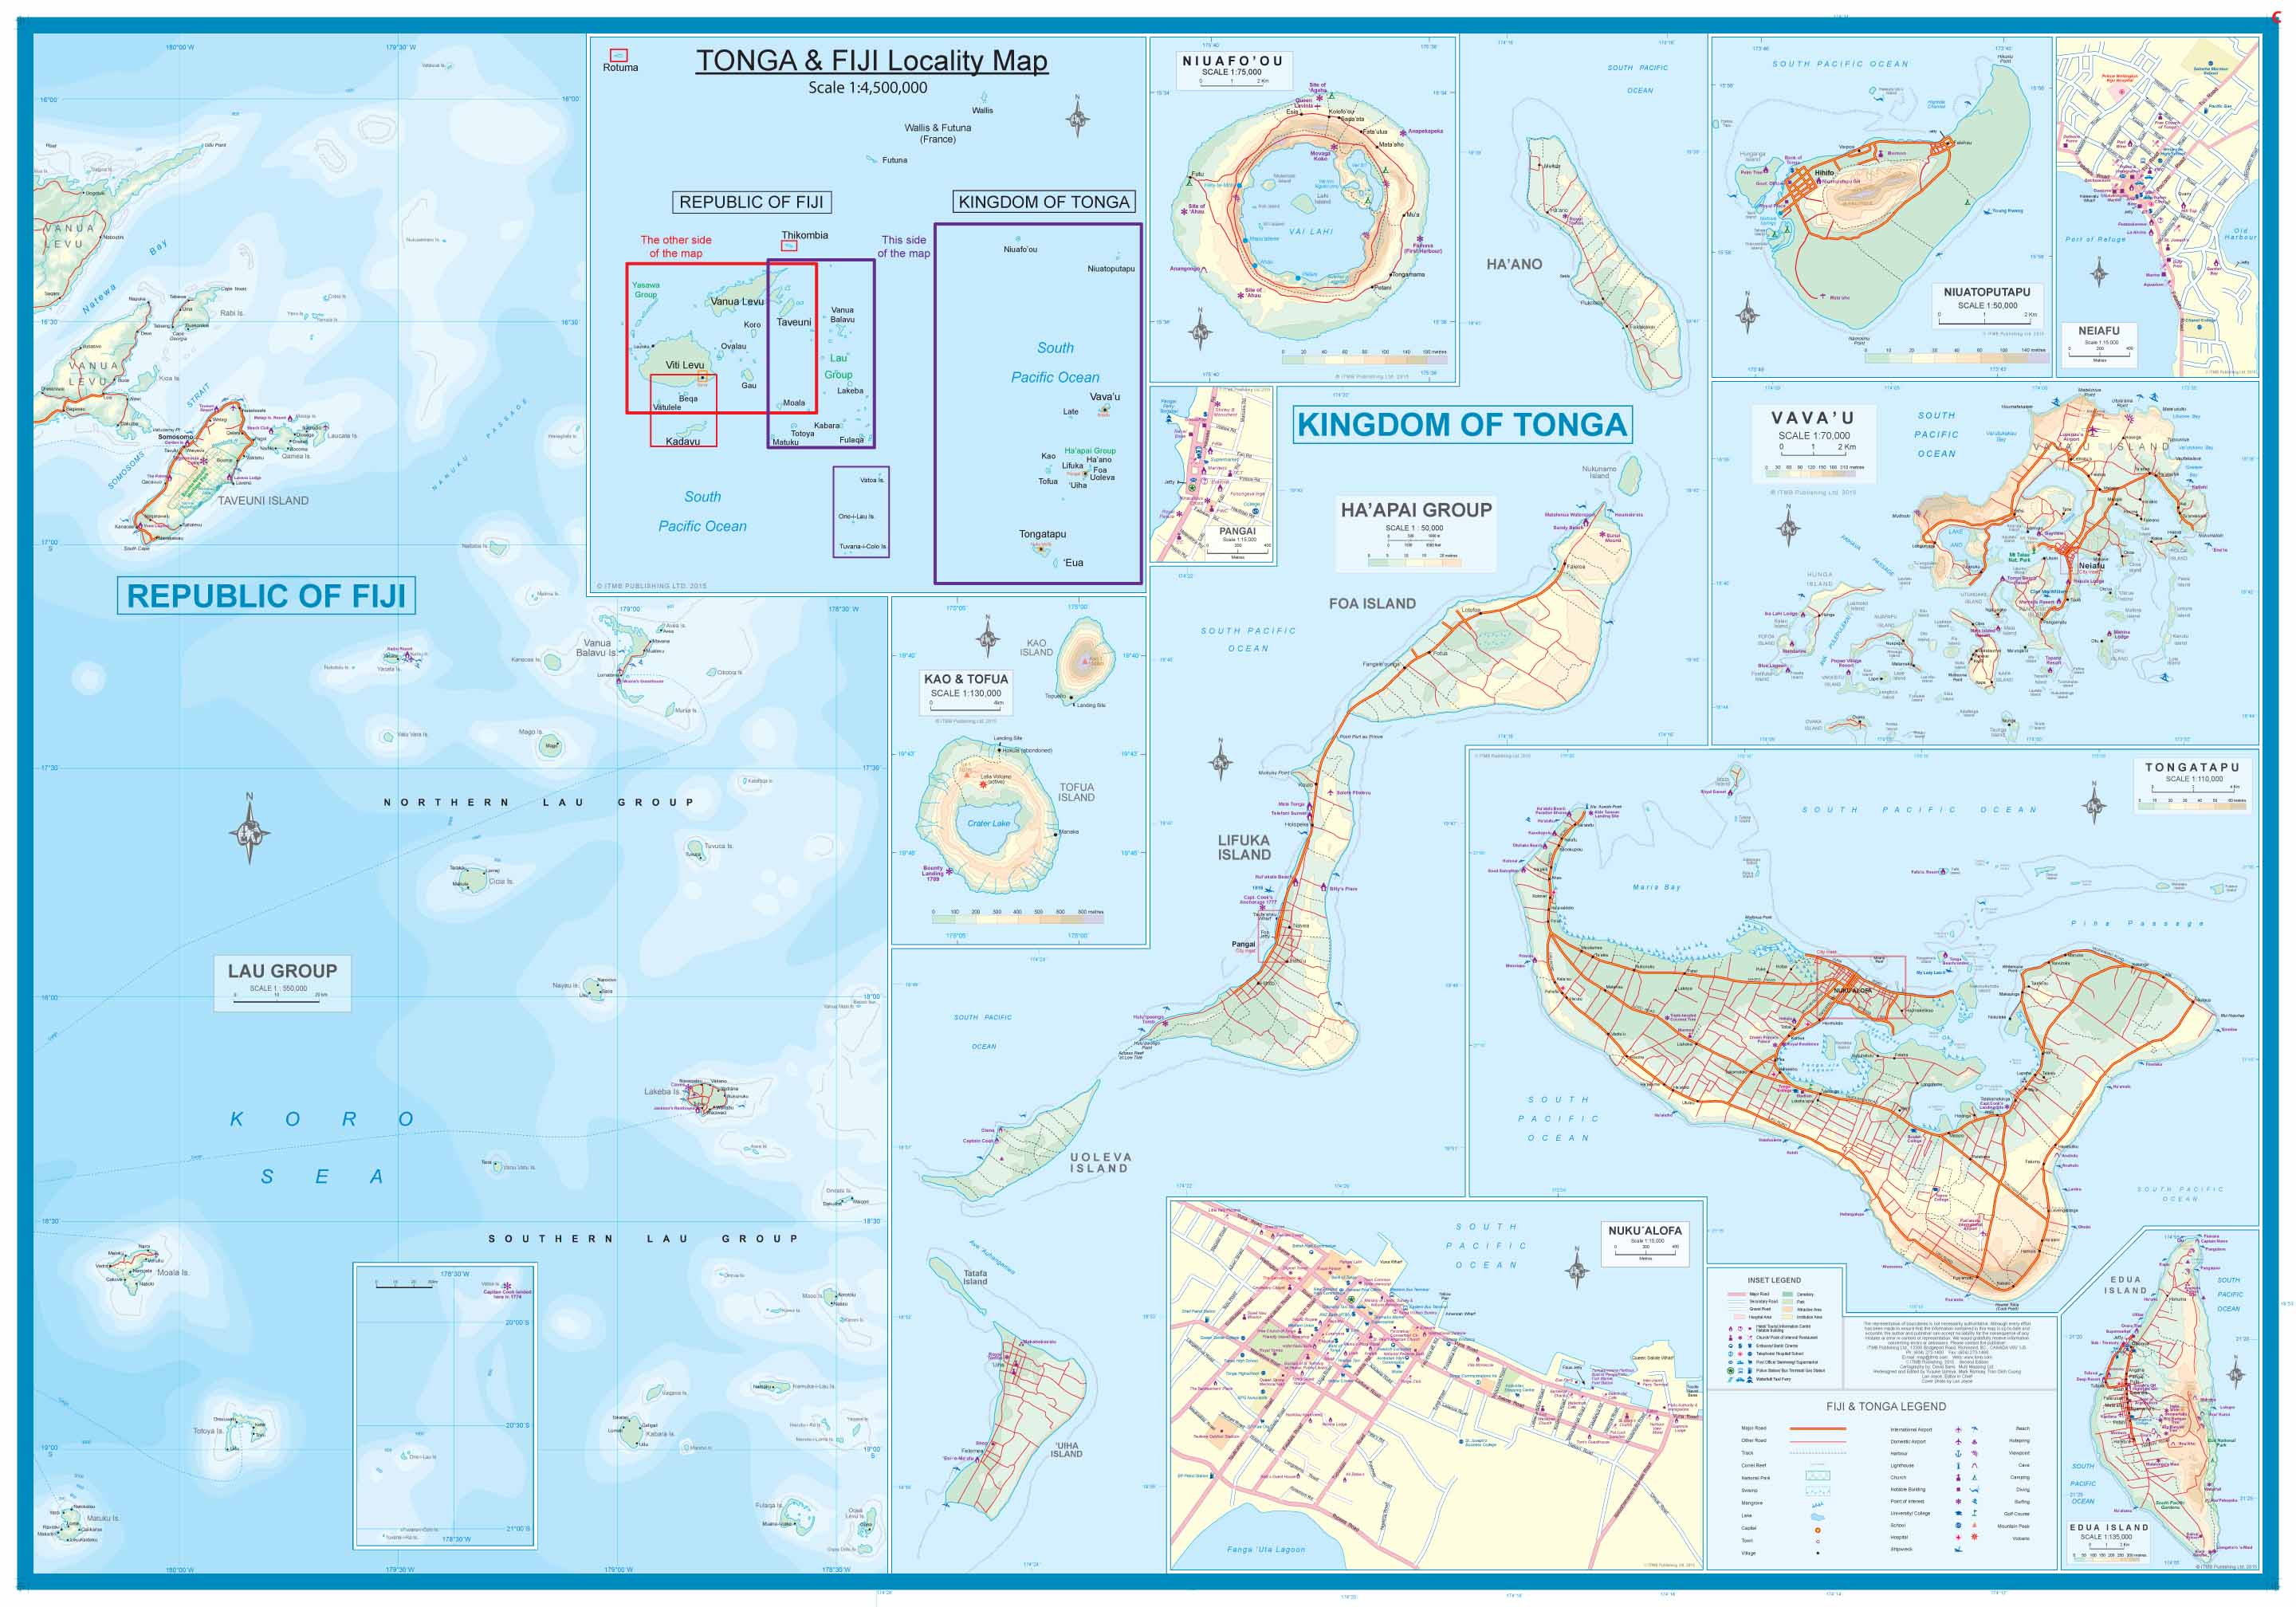 Maps For Travel City Maps Road Maps Guides Globes Topographic - Tonga map